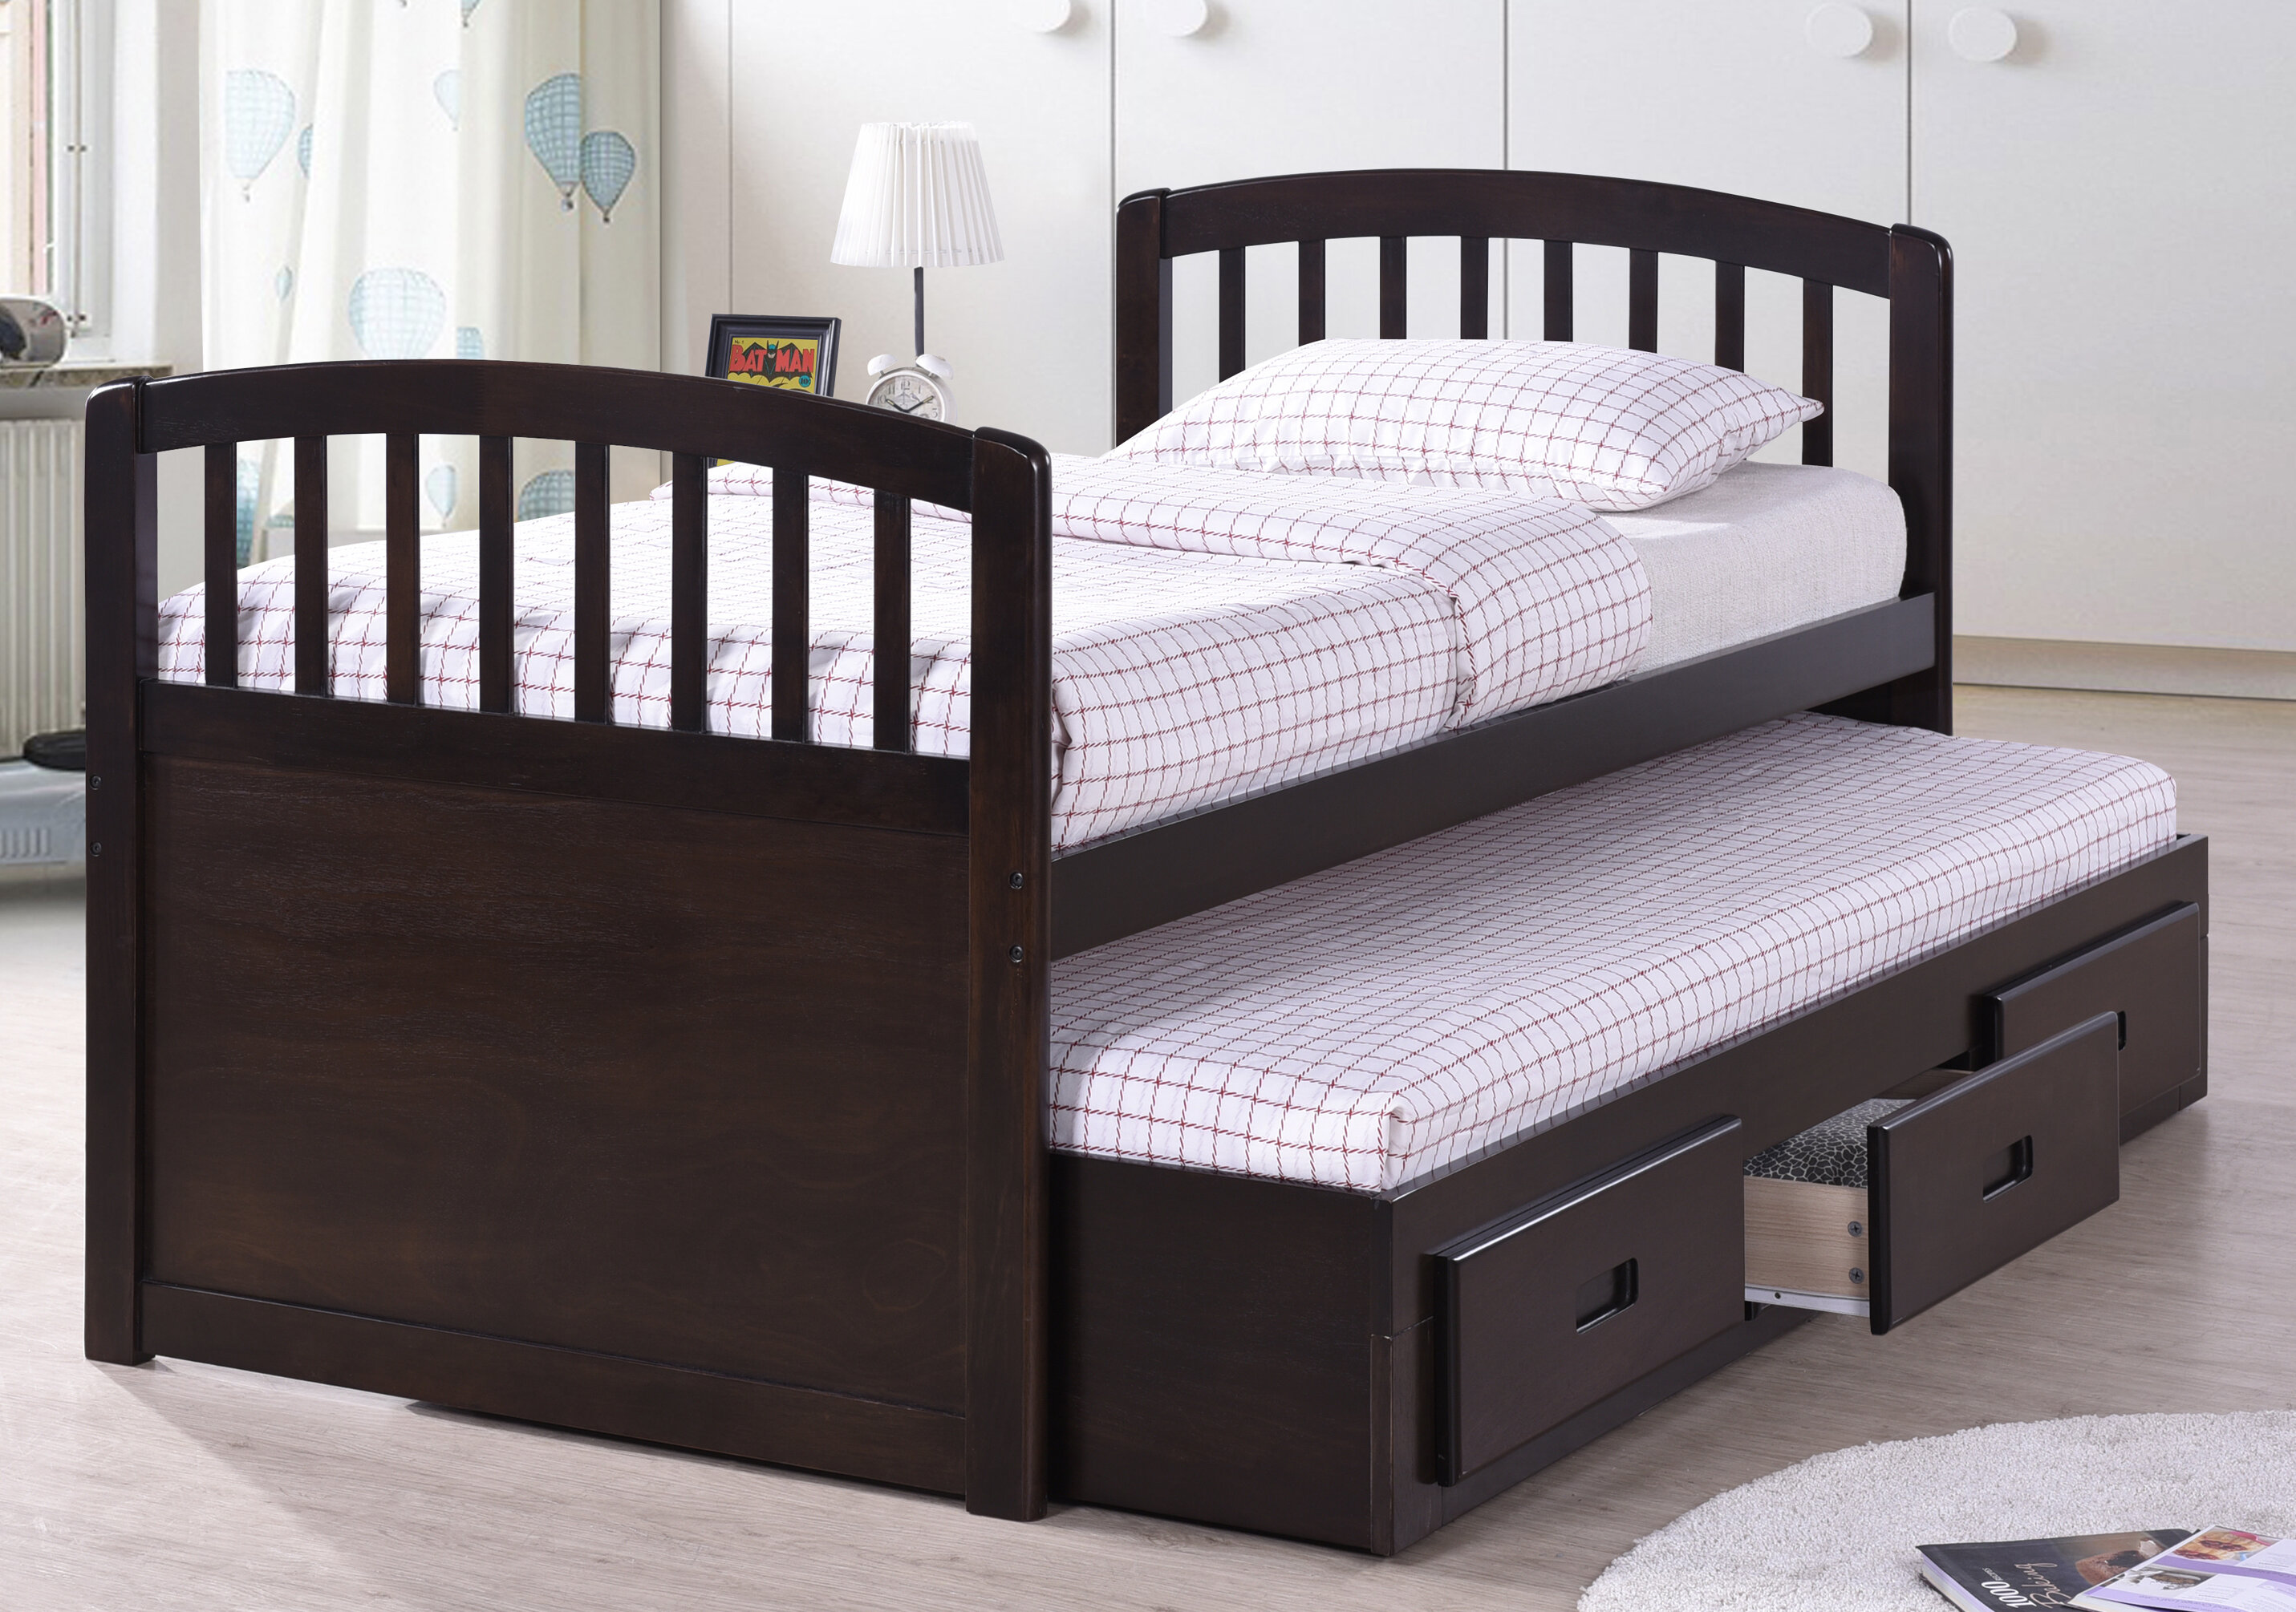 trundle bed beds brothers cisco linda products